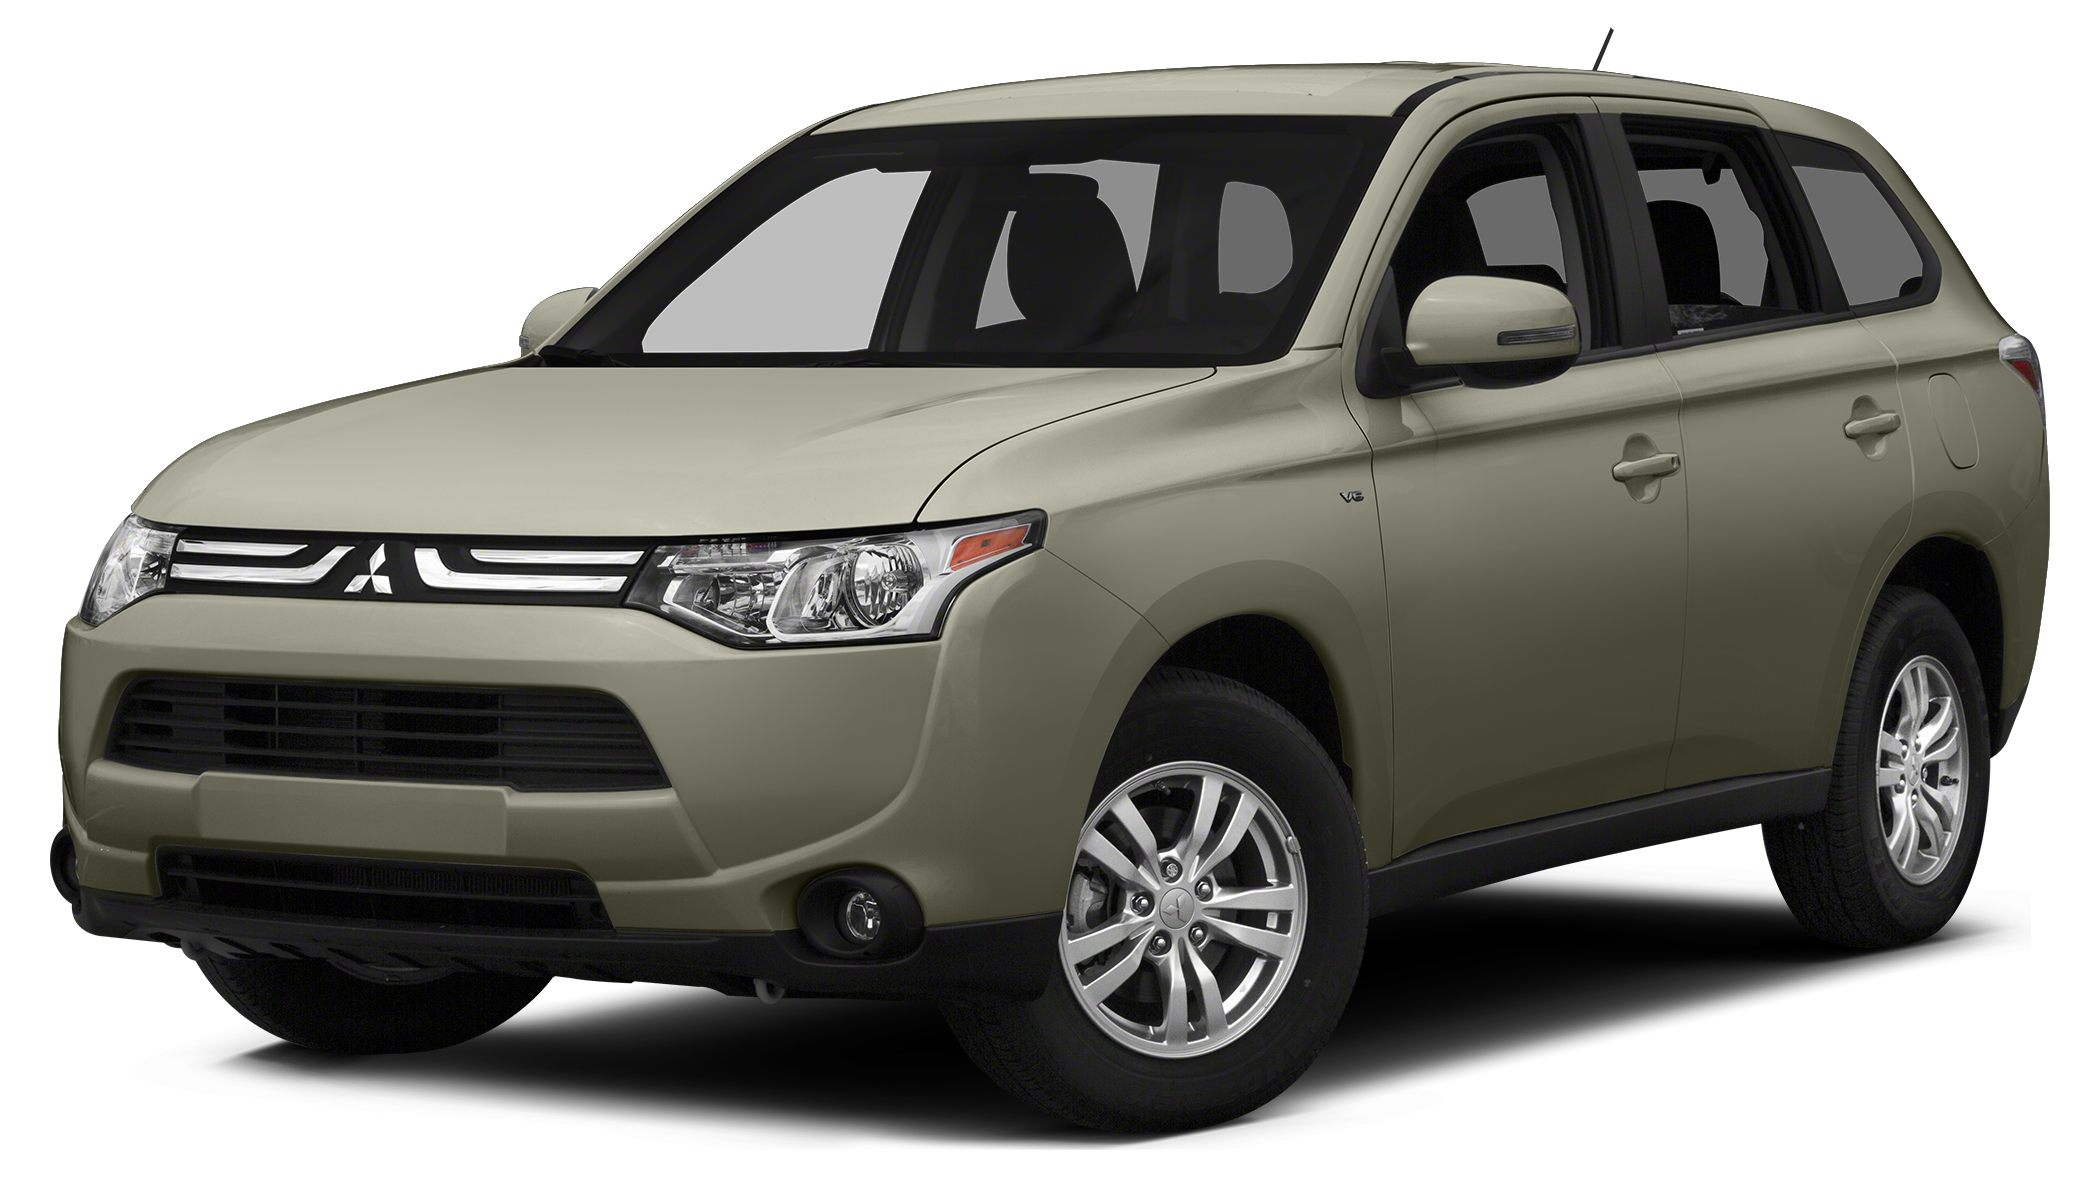 2014 Mitsubishi Outlander ES The Mitsubishi Outlander has been redesigned for 2014 with a lighter